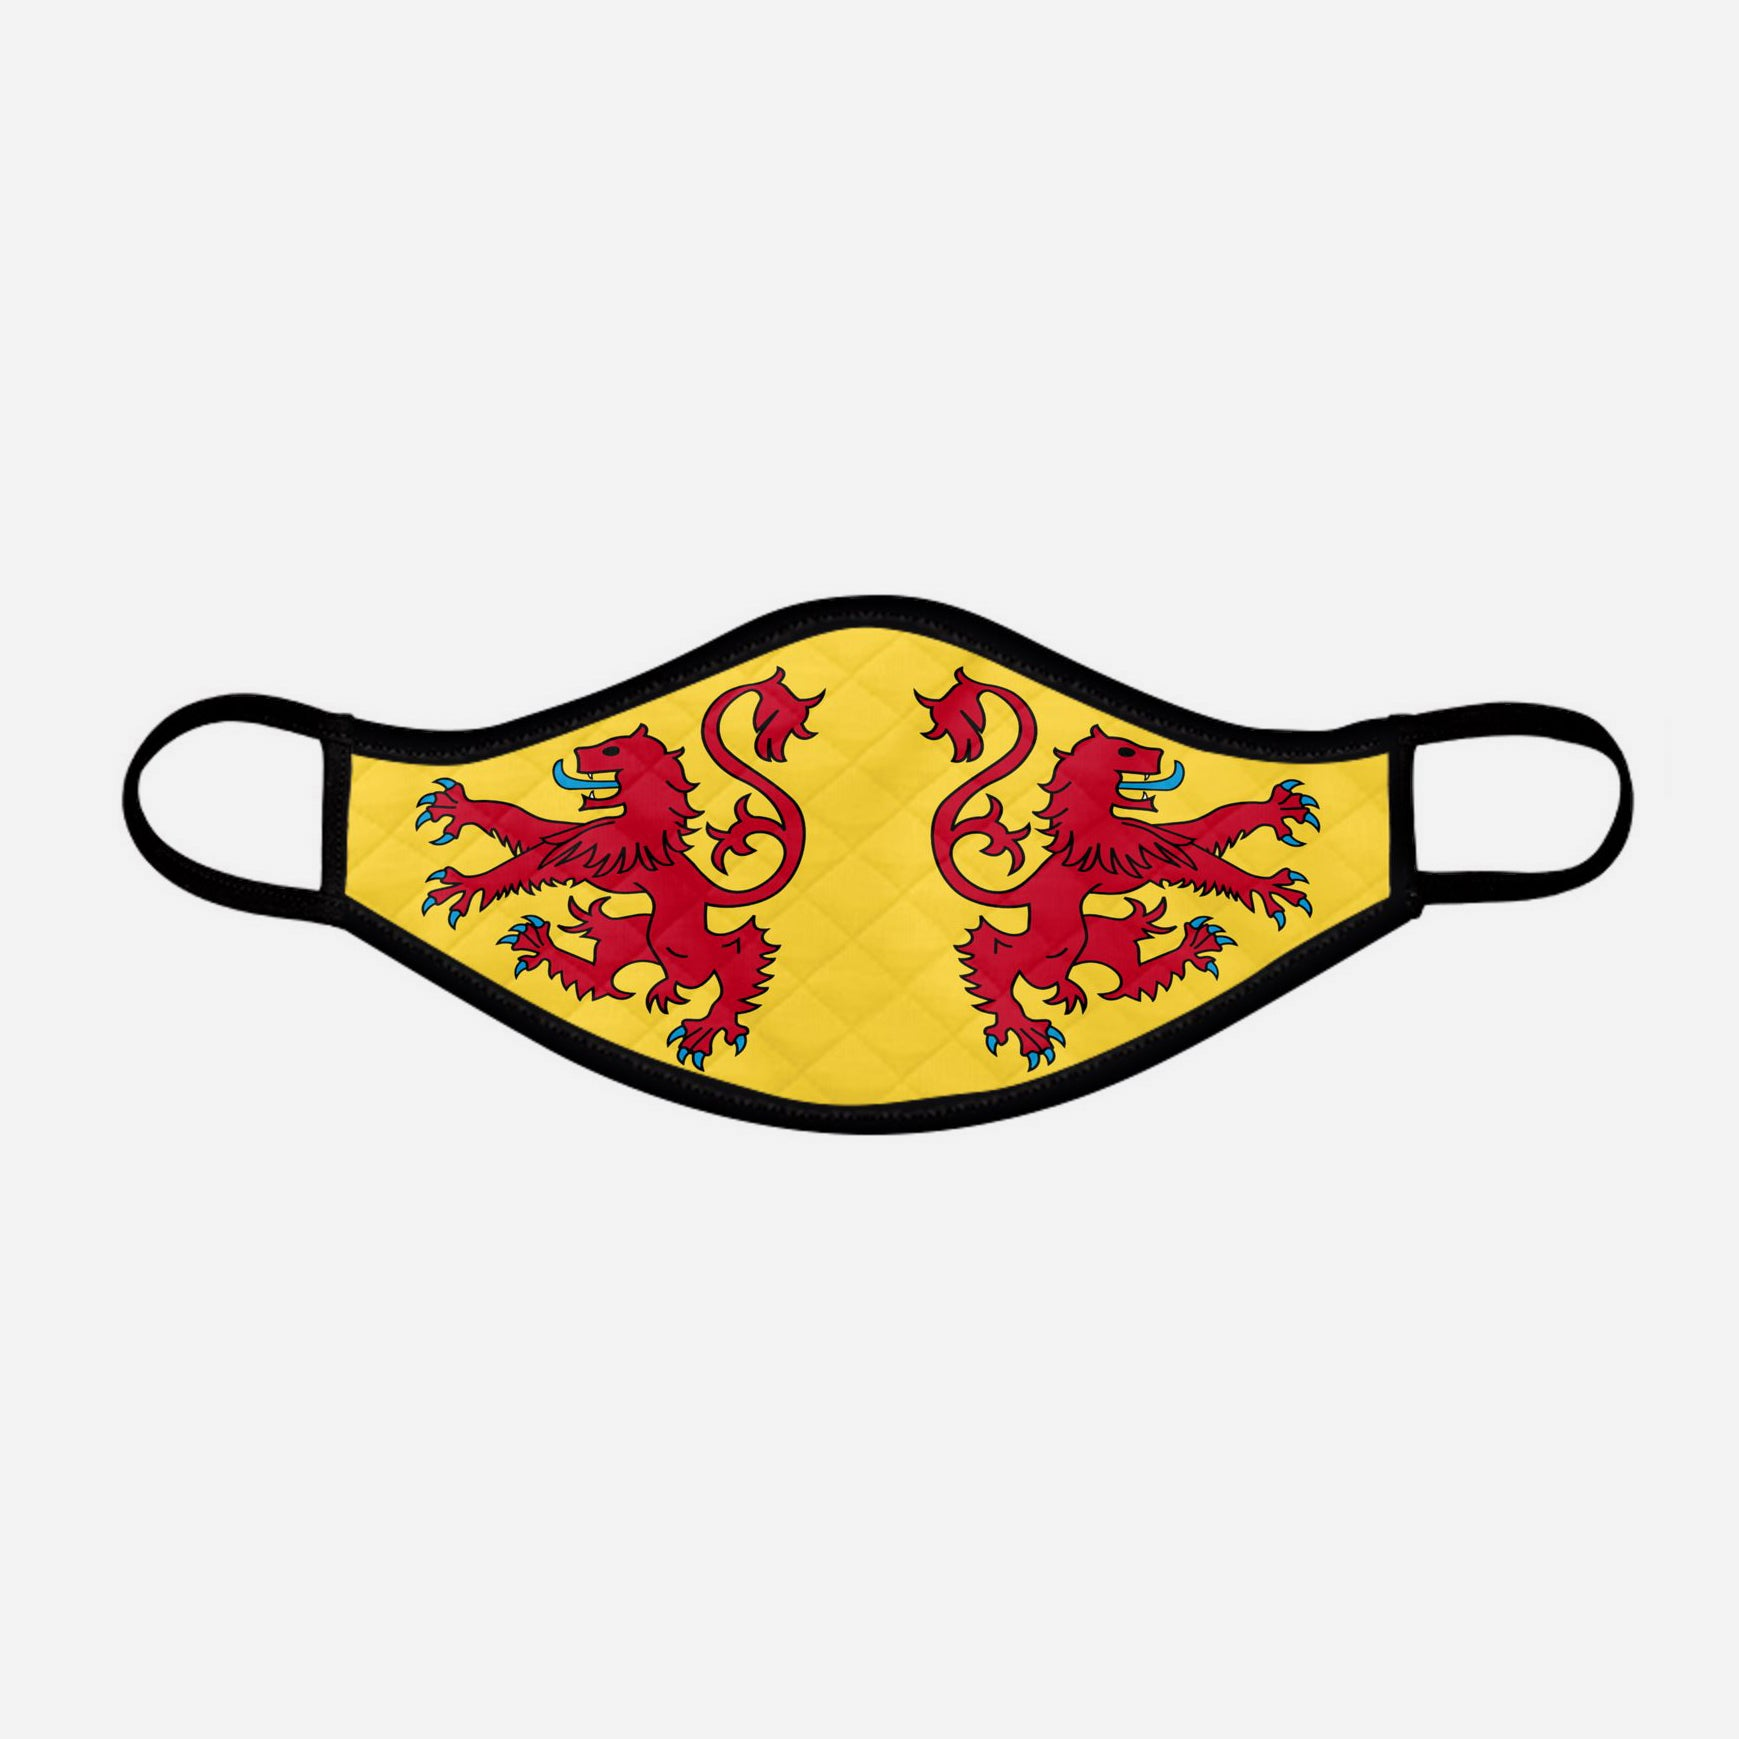 Lion Rampant of Scotland Face mask cloth covering small